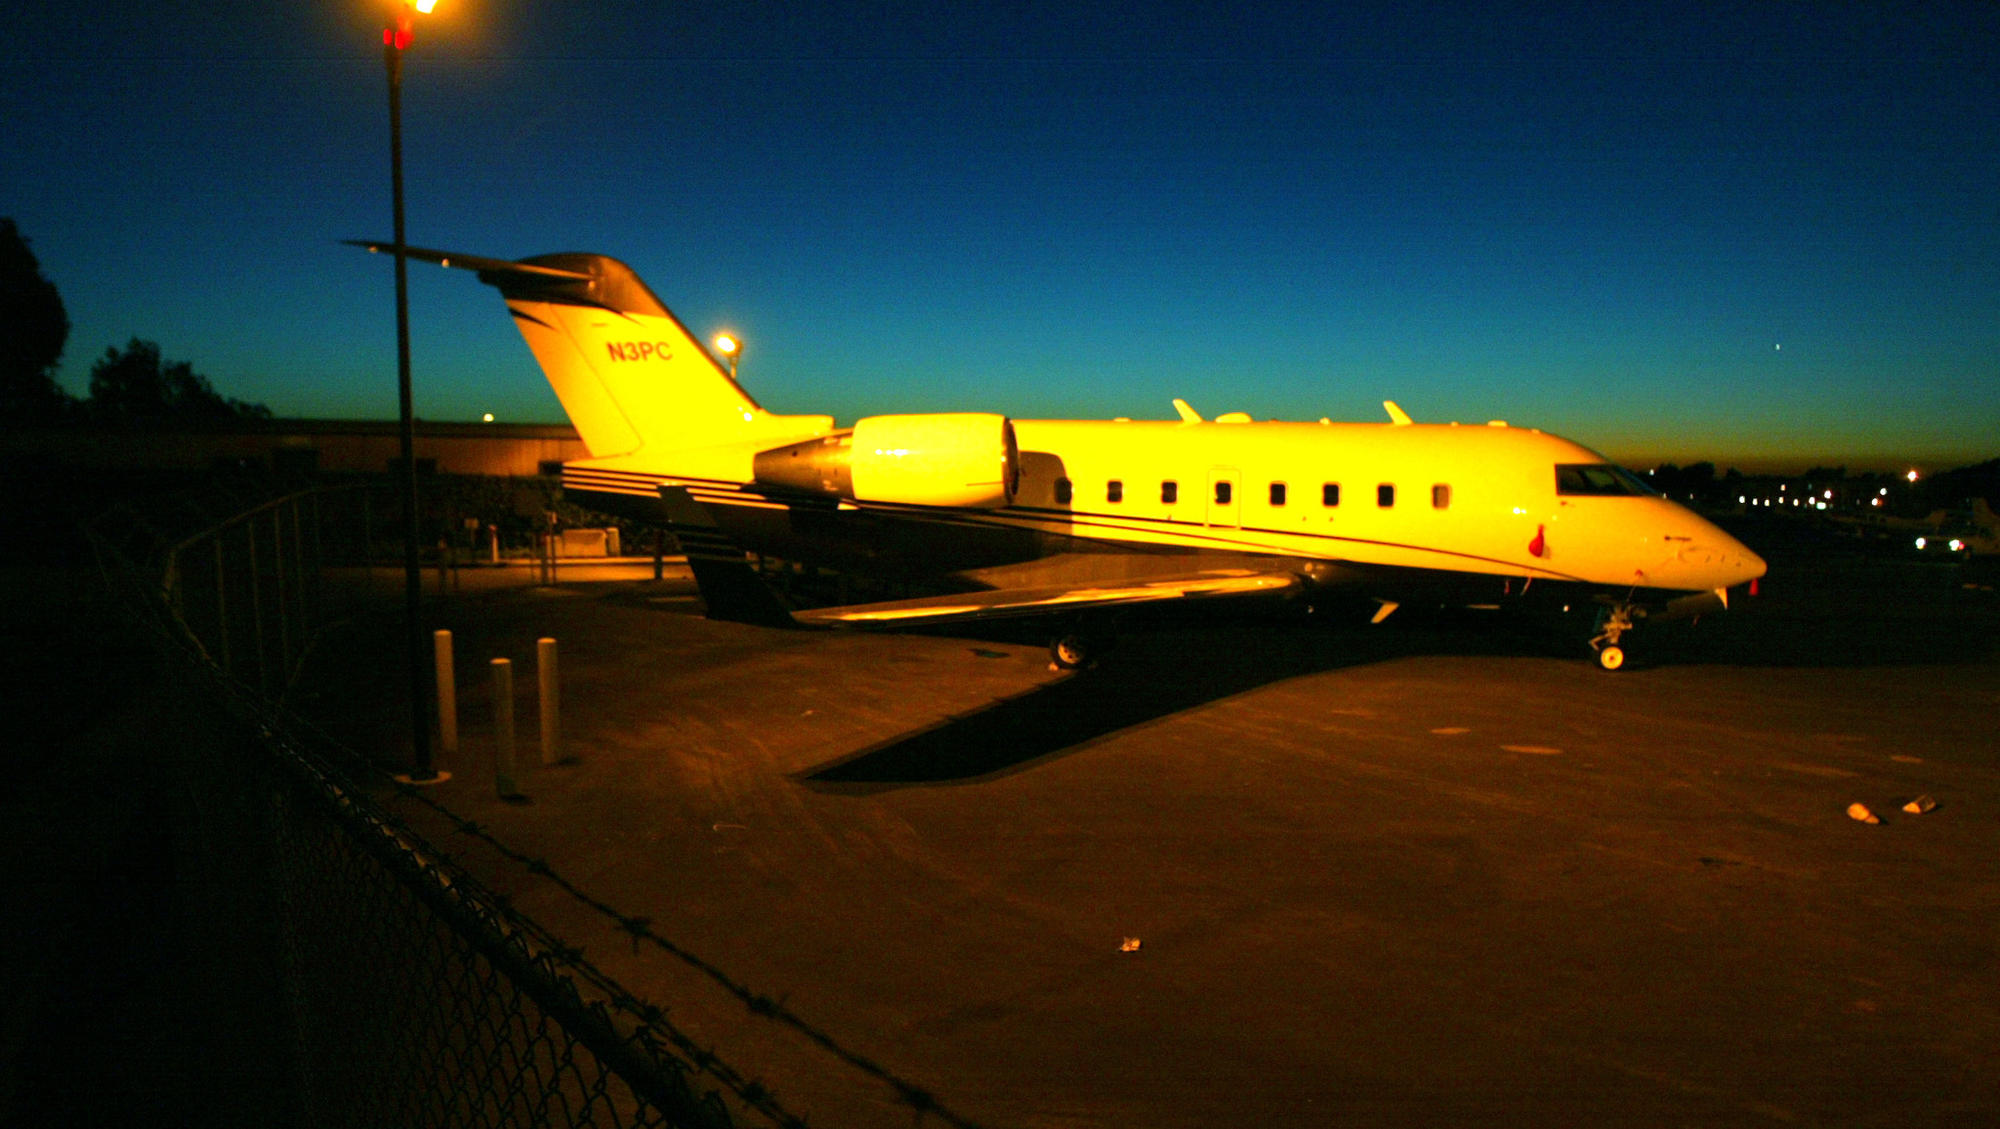 Sitting in the yellow glow of an industrial light in the corner of John Wayne Airport off Campus Avenue, and clearly visible to the public is a private jet believed to be owned by the Trinity Broadcasting Network